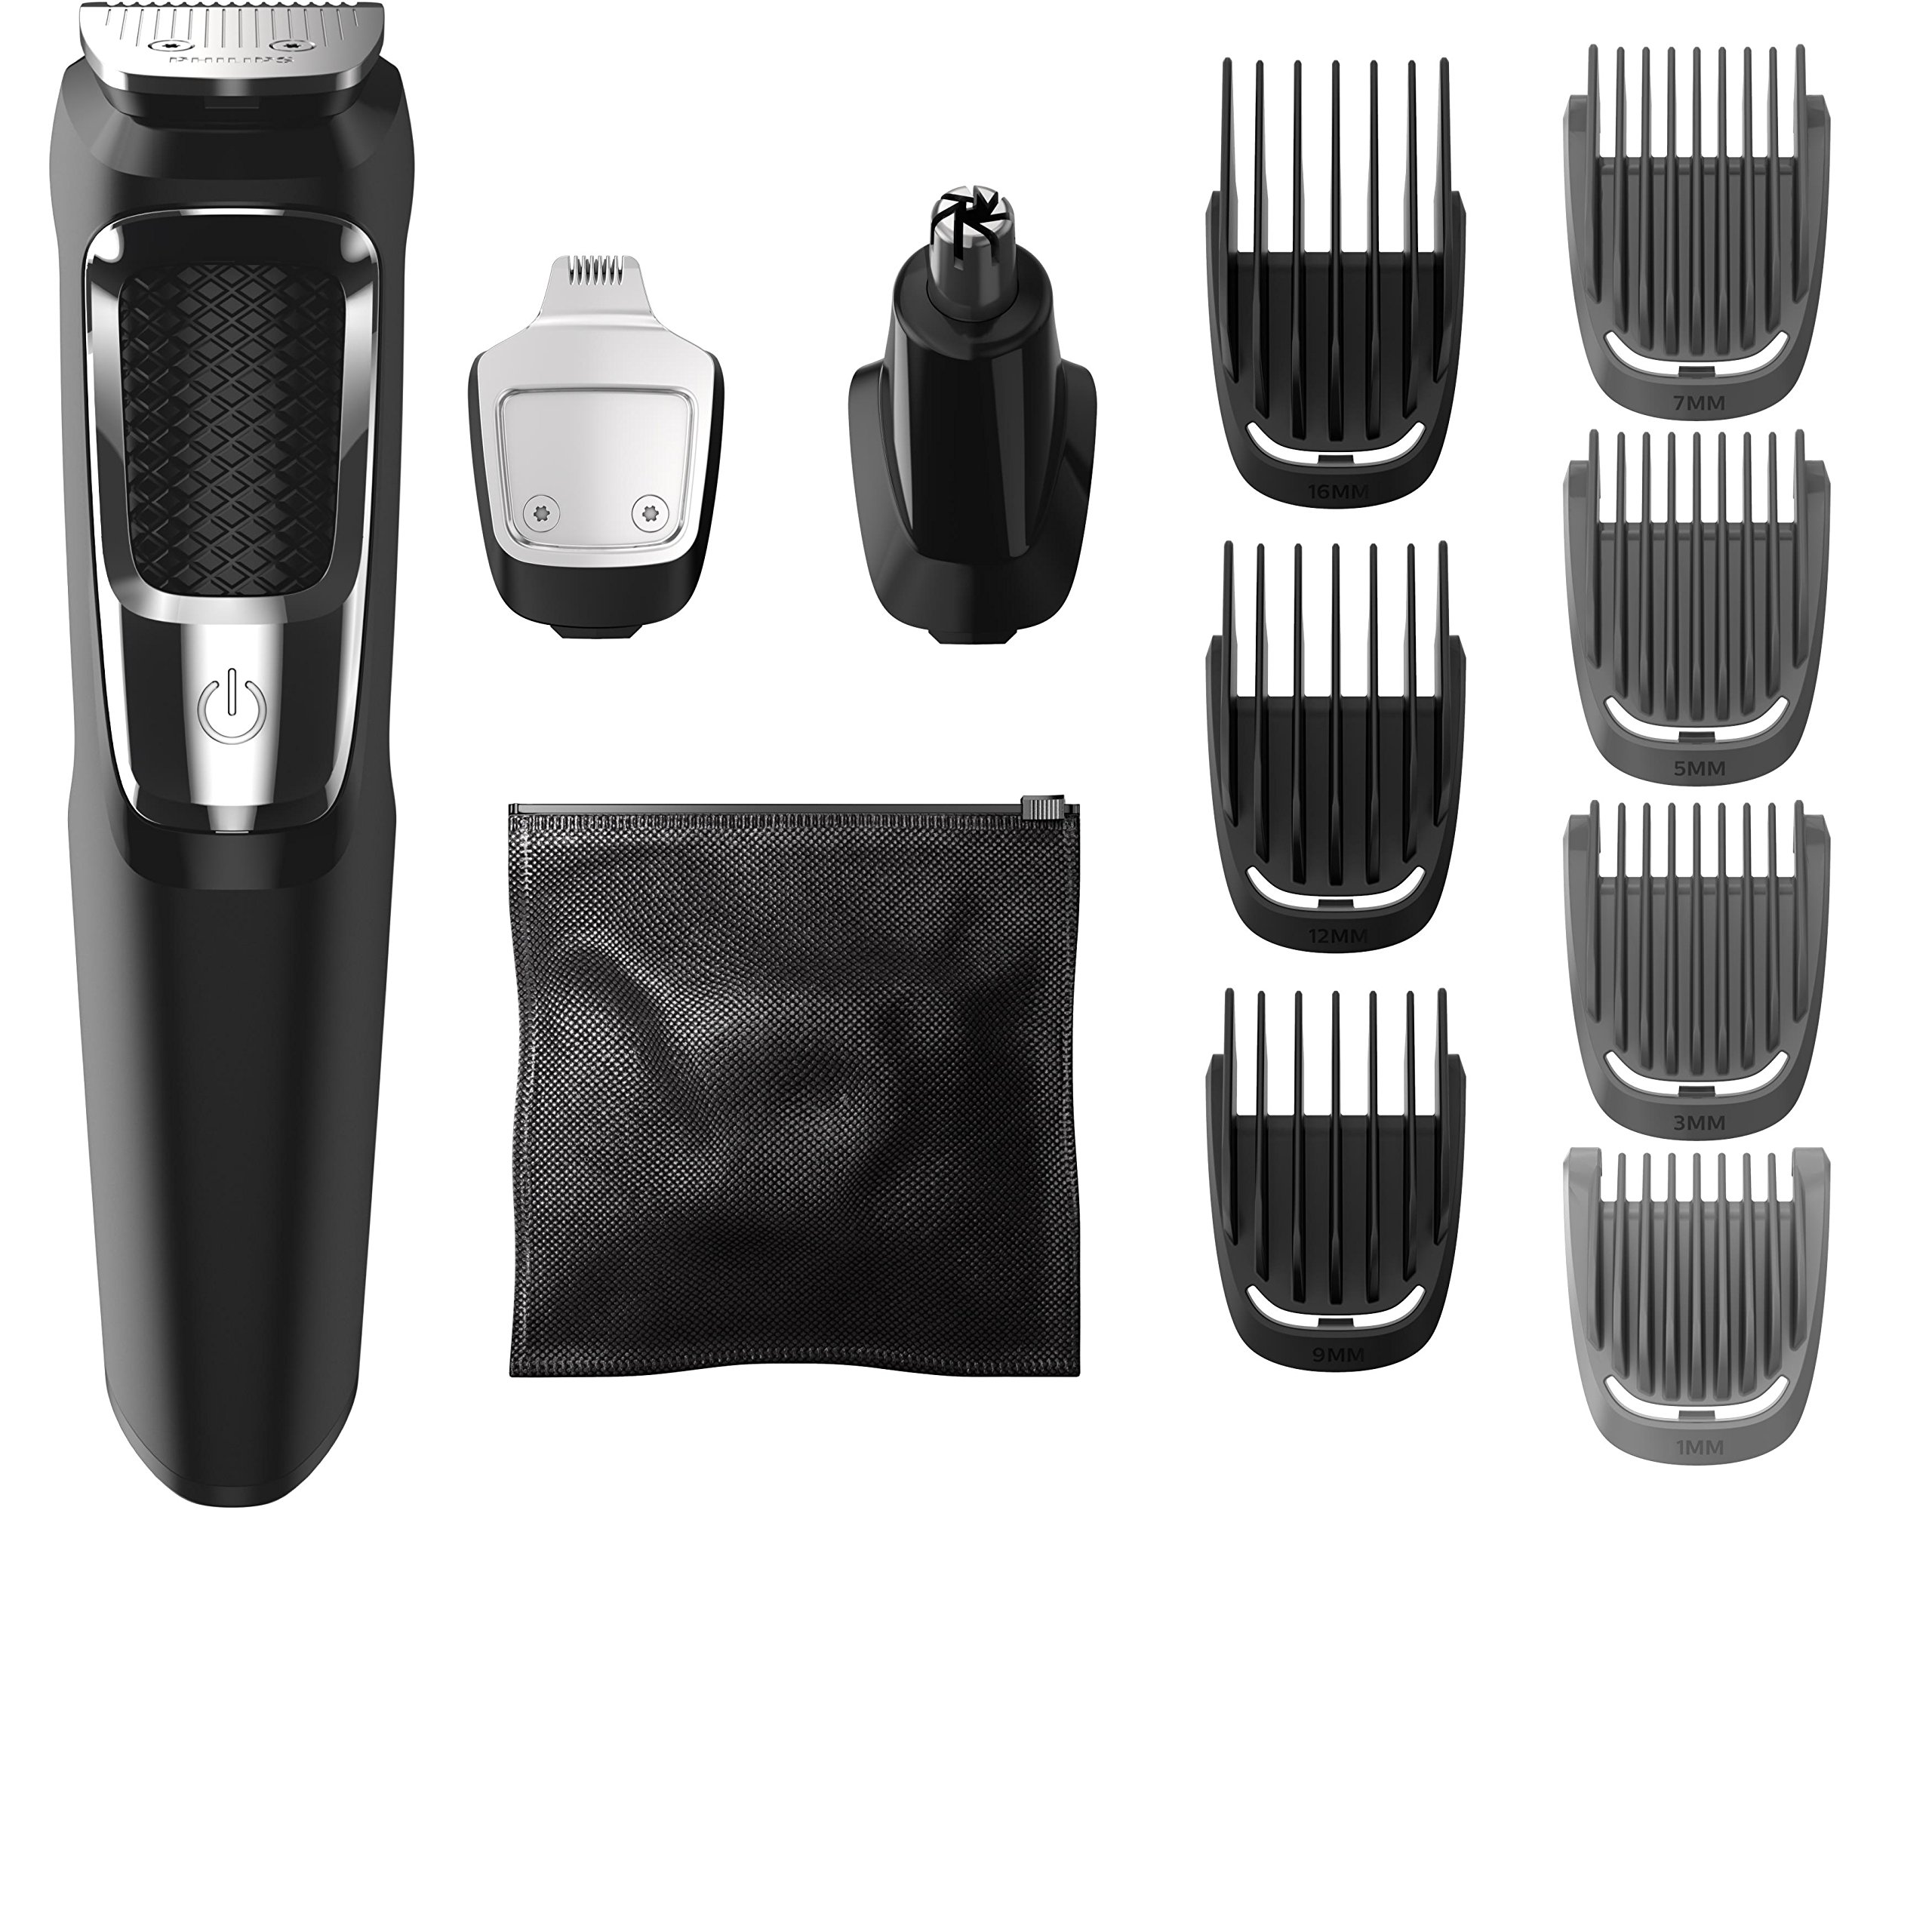 Philips Norelco 13 Attachments Shaving Set @ 64% OFF